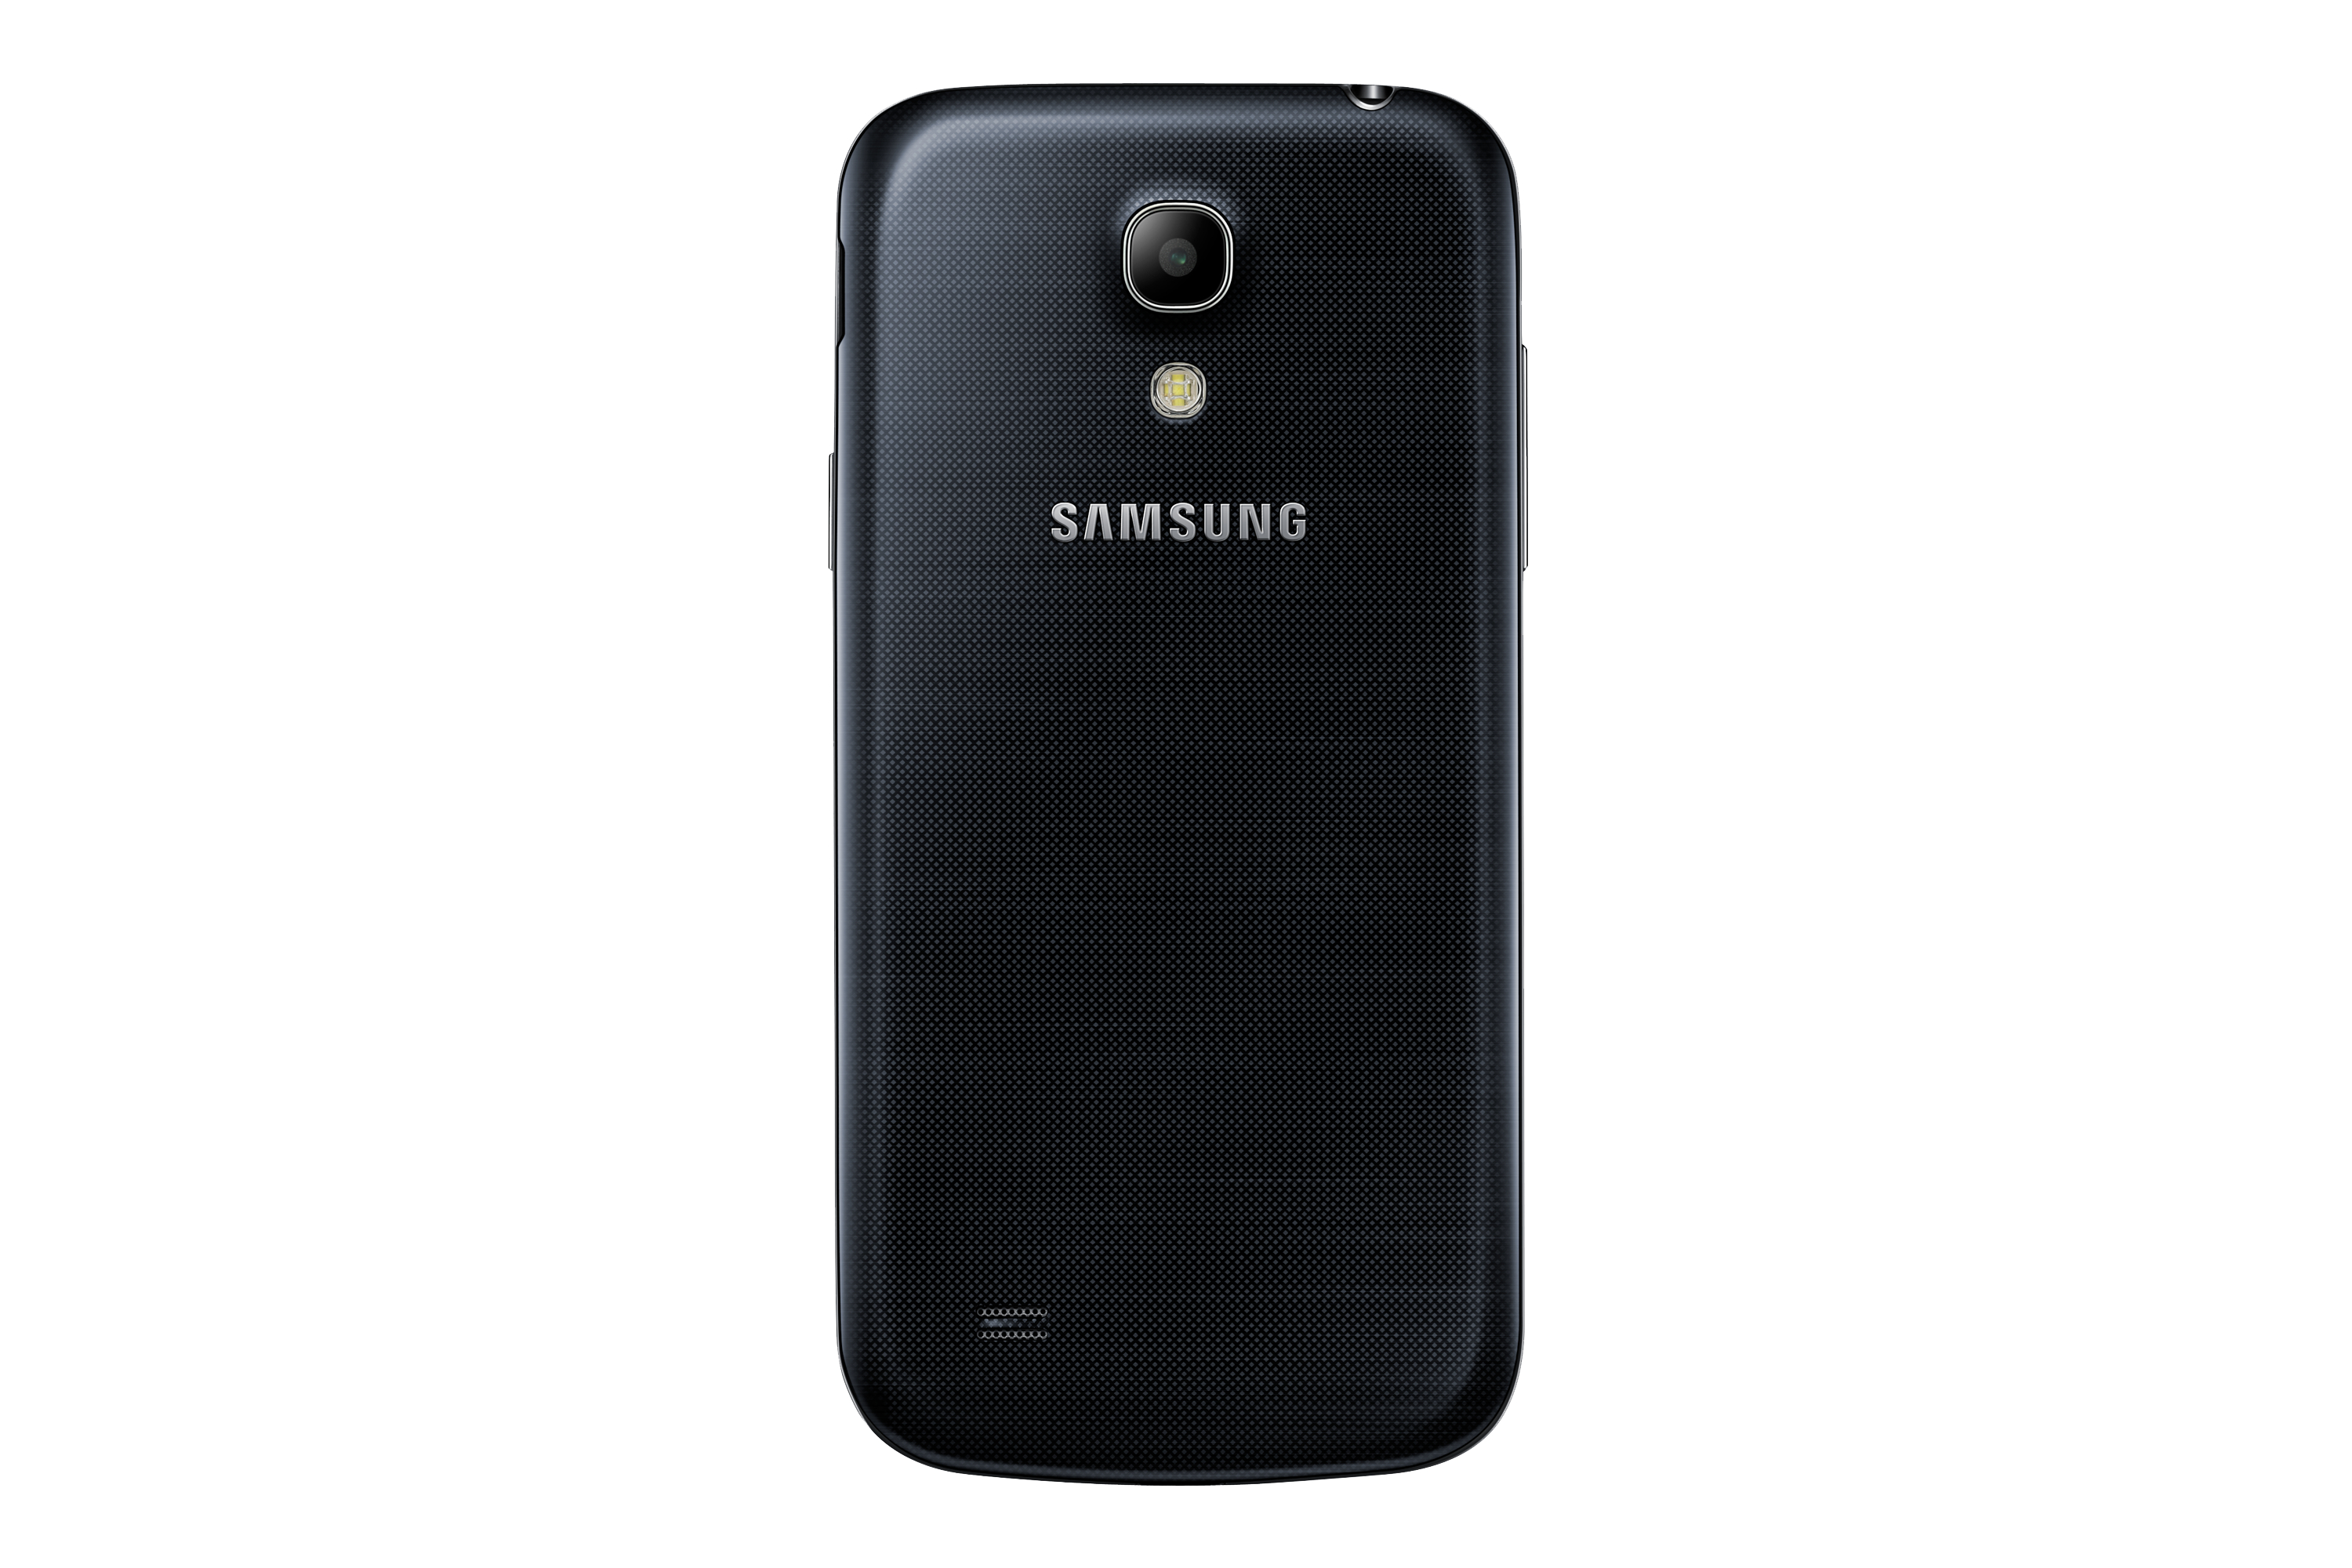 How to root samsung galaxy s4 mini gt i9192 - Como Fazer O Root Samsung Galaxy S4 Mini